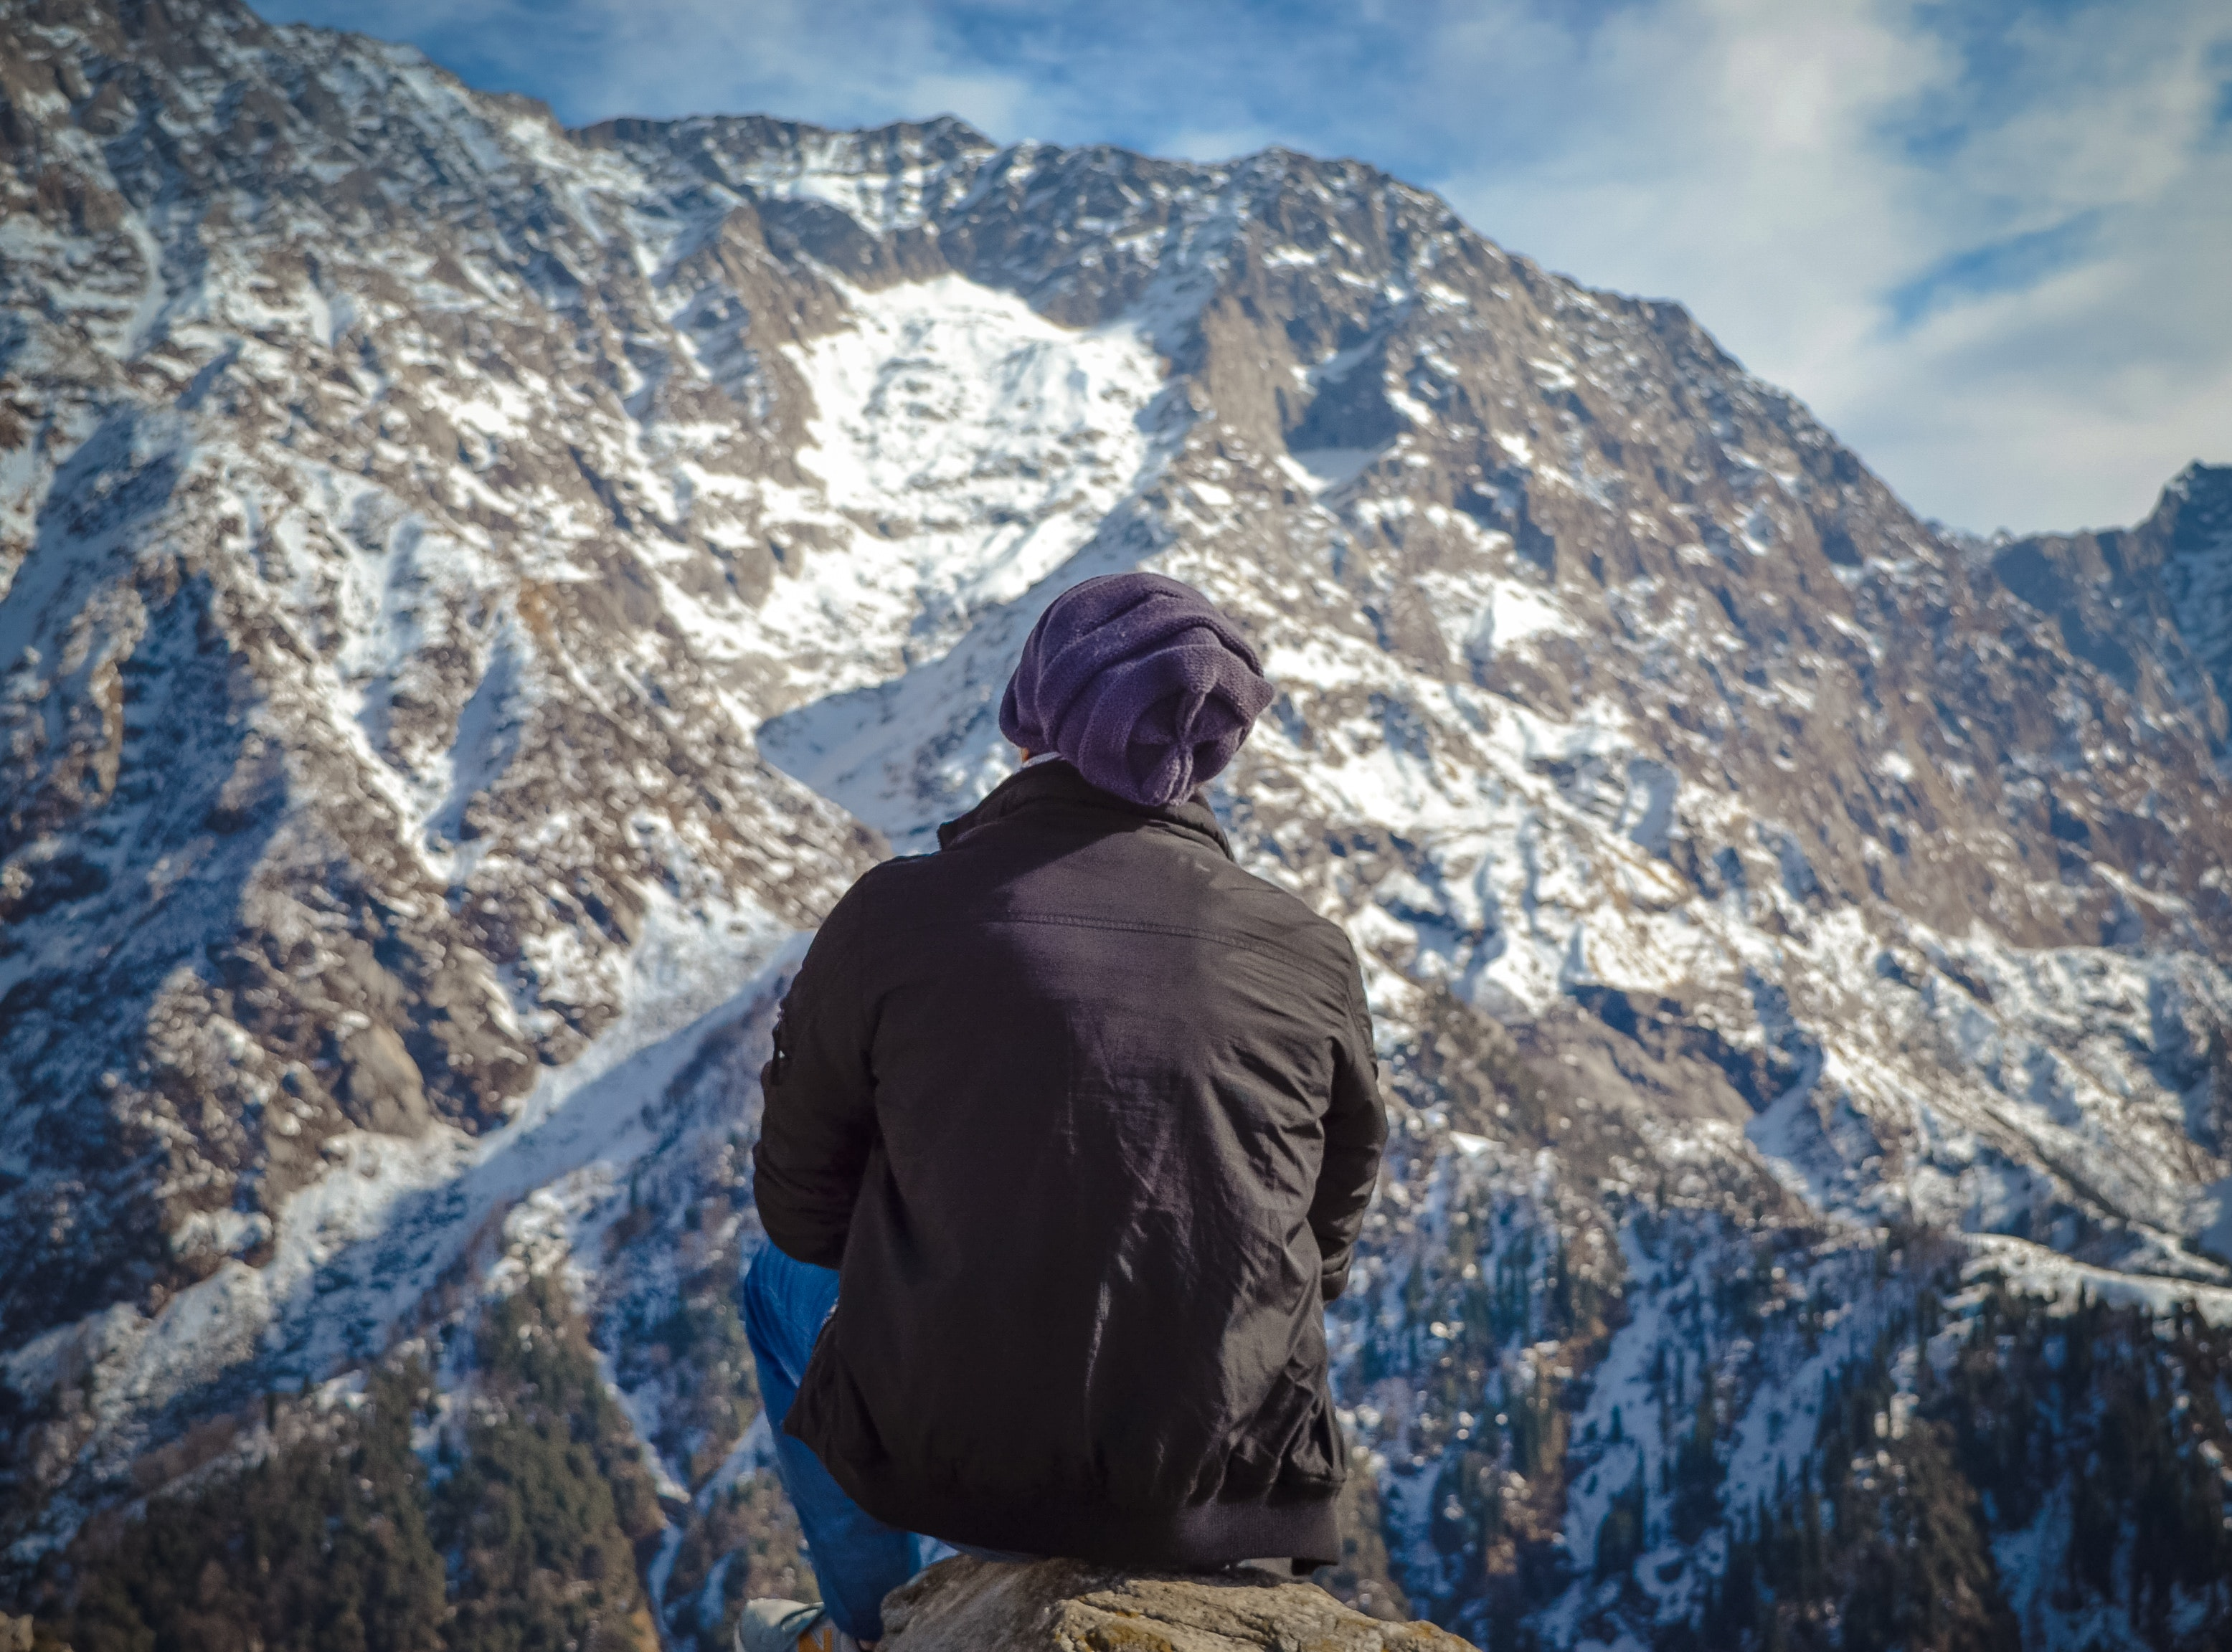 Person Sitting on Hill, Adult, Snow, Person, Portrait, HQ Photo